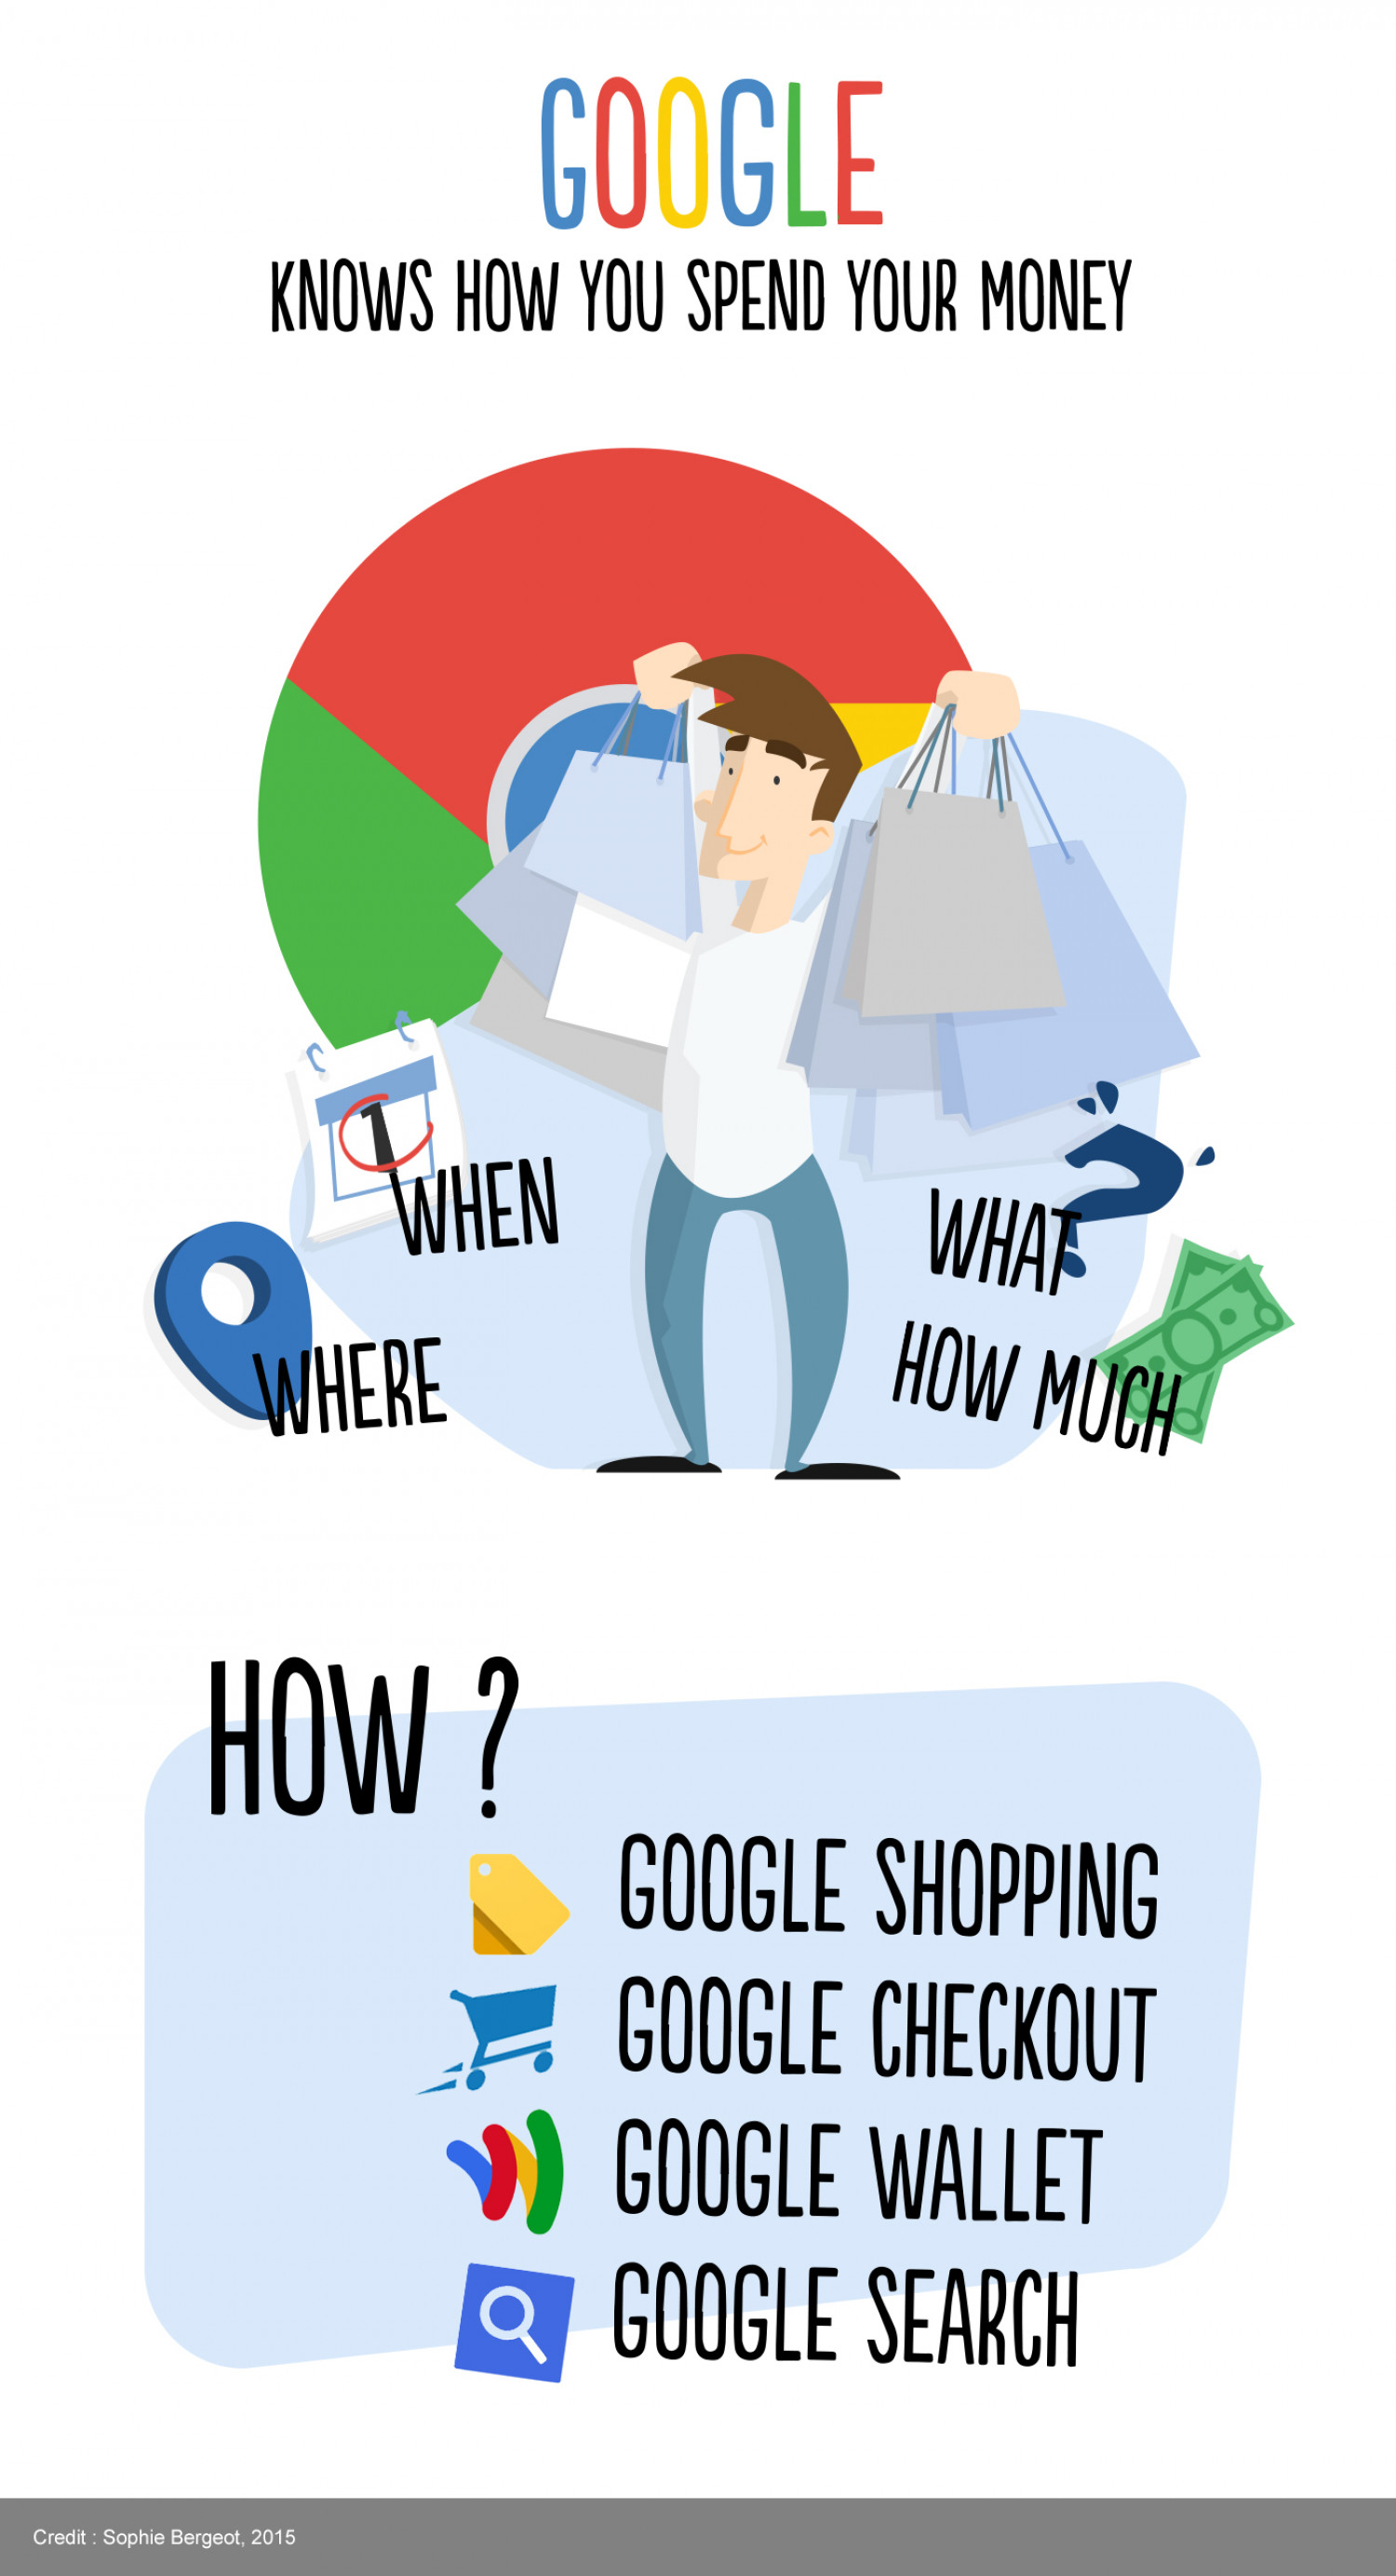 Google knows how you spend your money Infographic